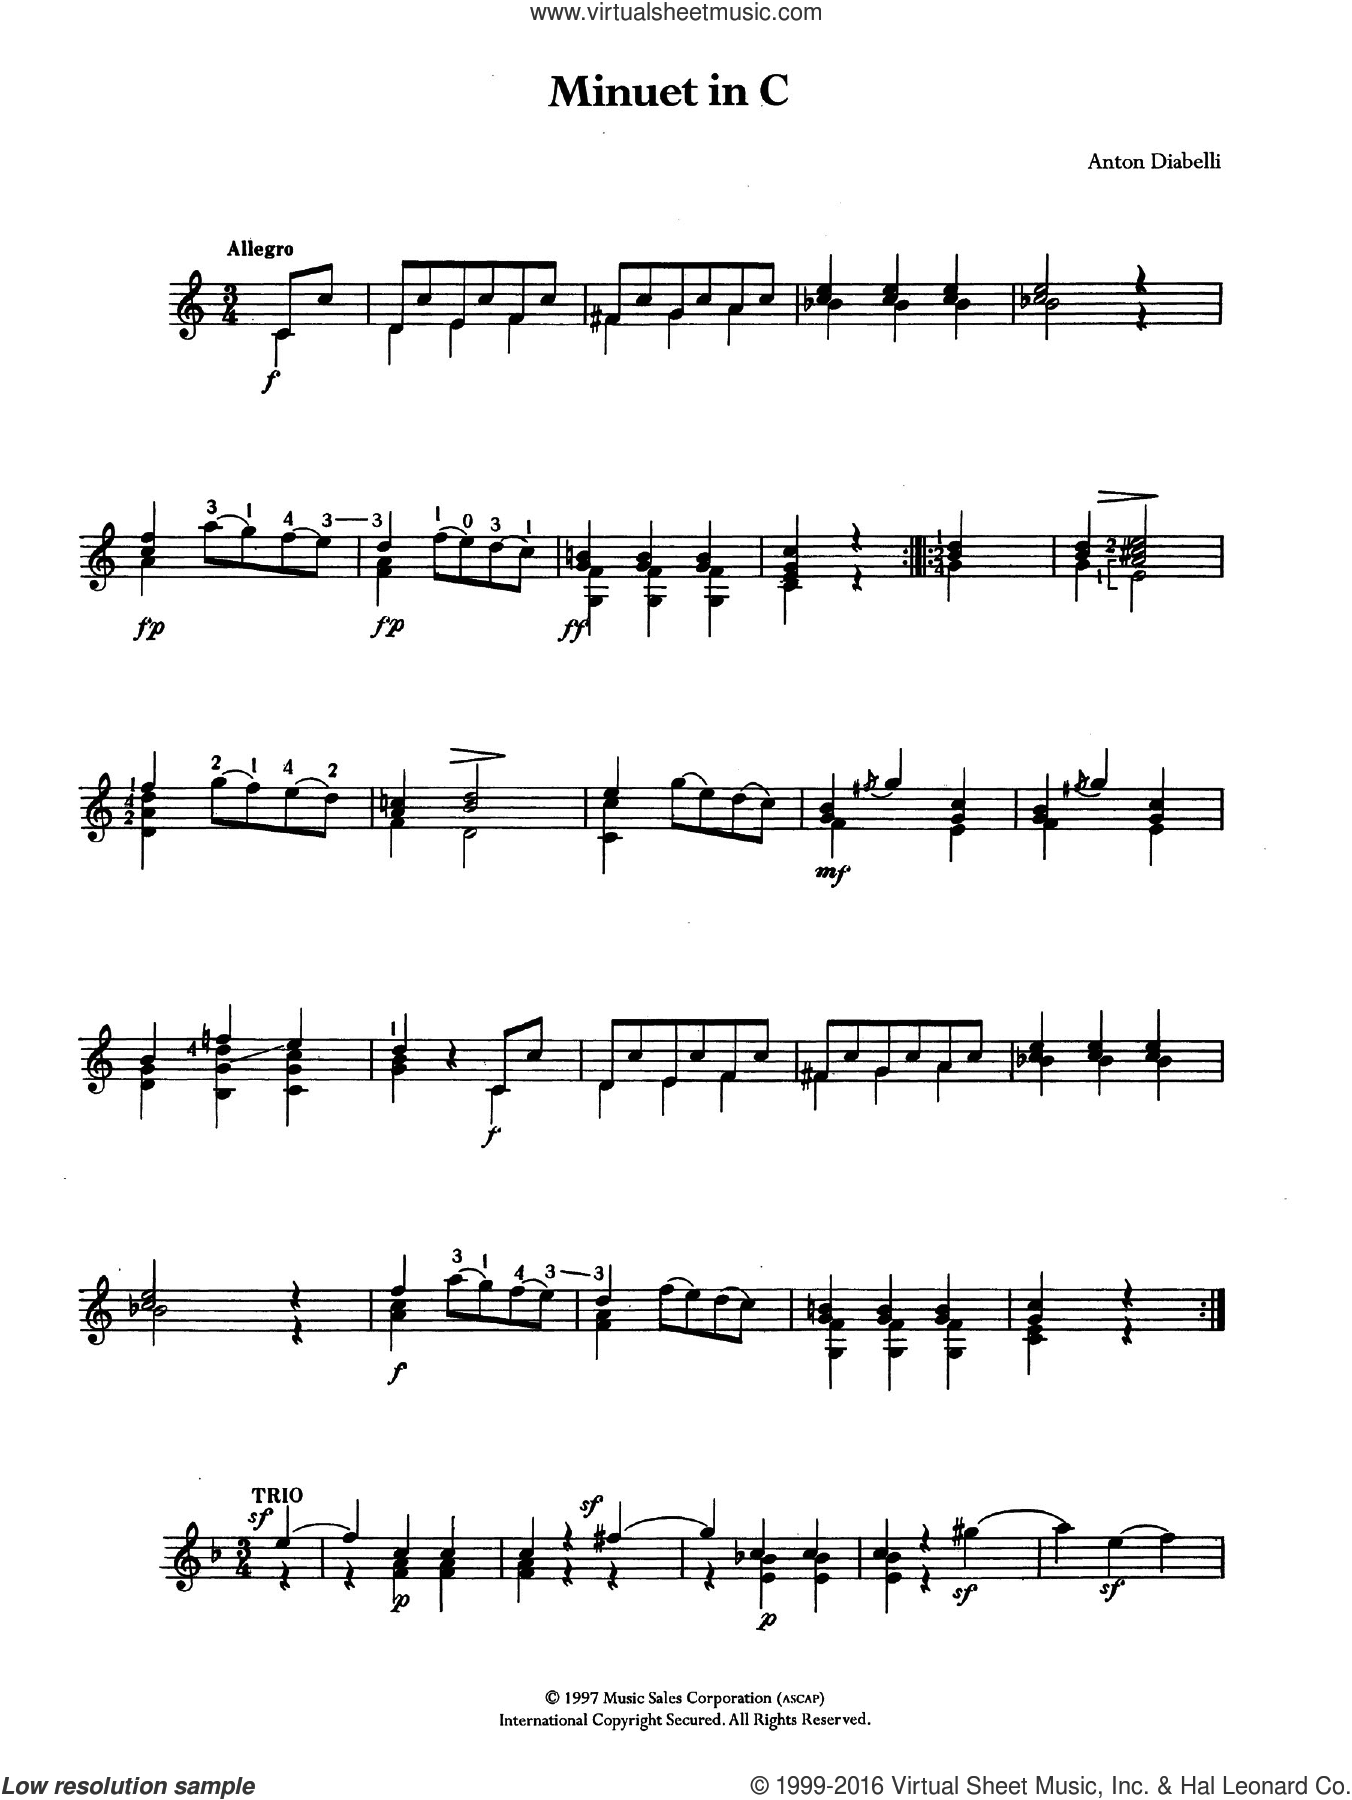 Minuet In C sheet music for guitar solo (chords) by Antonio Diabelli, classical score, easy guitar (chords). Score Image Preview.